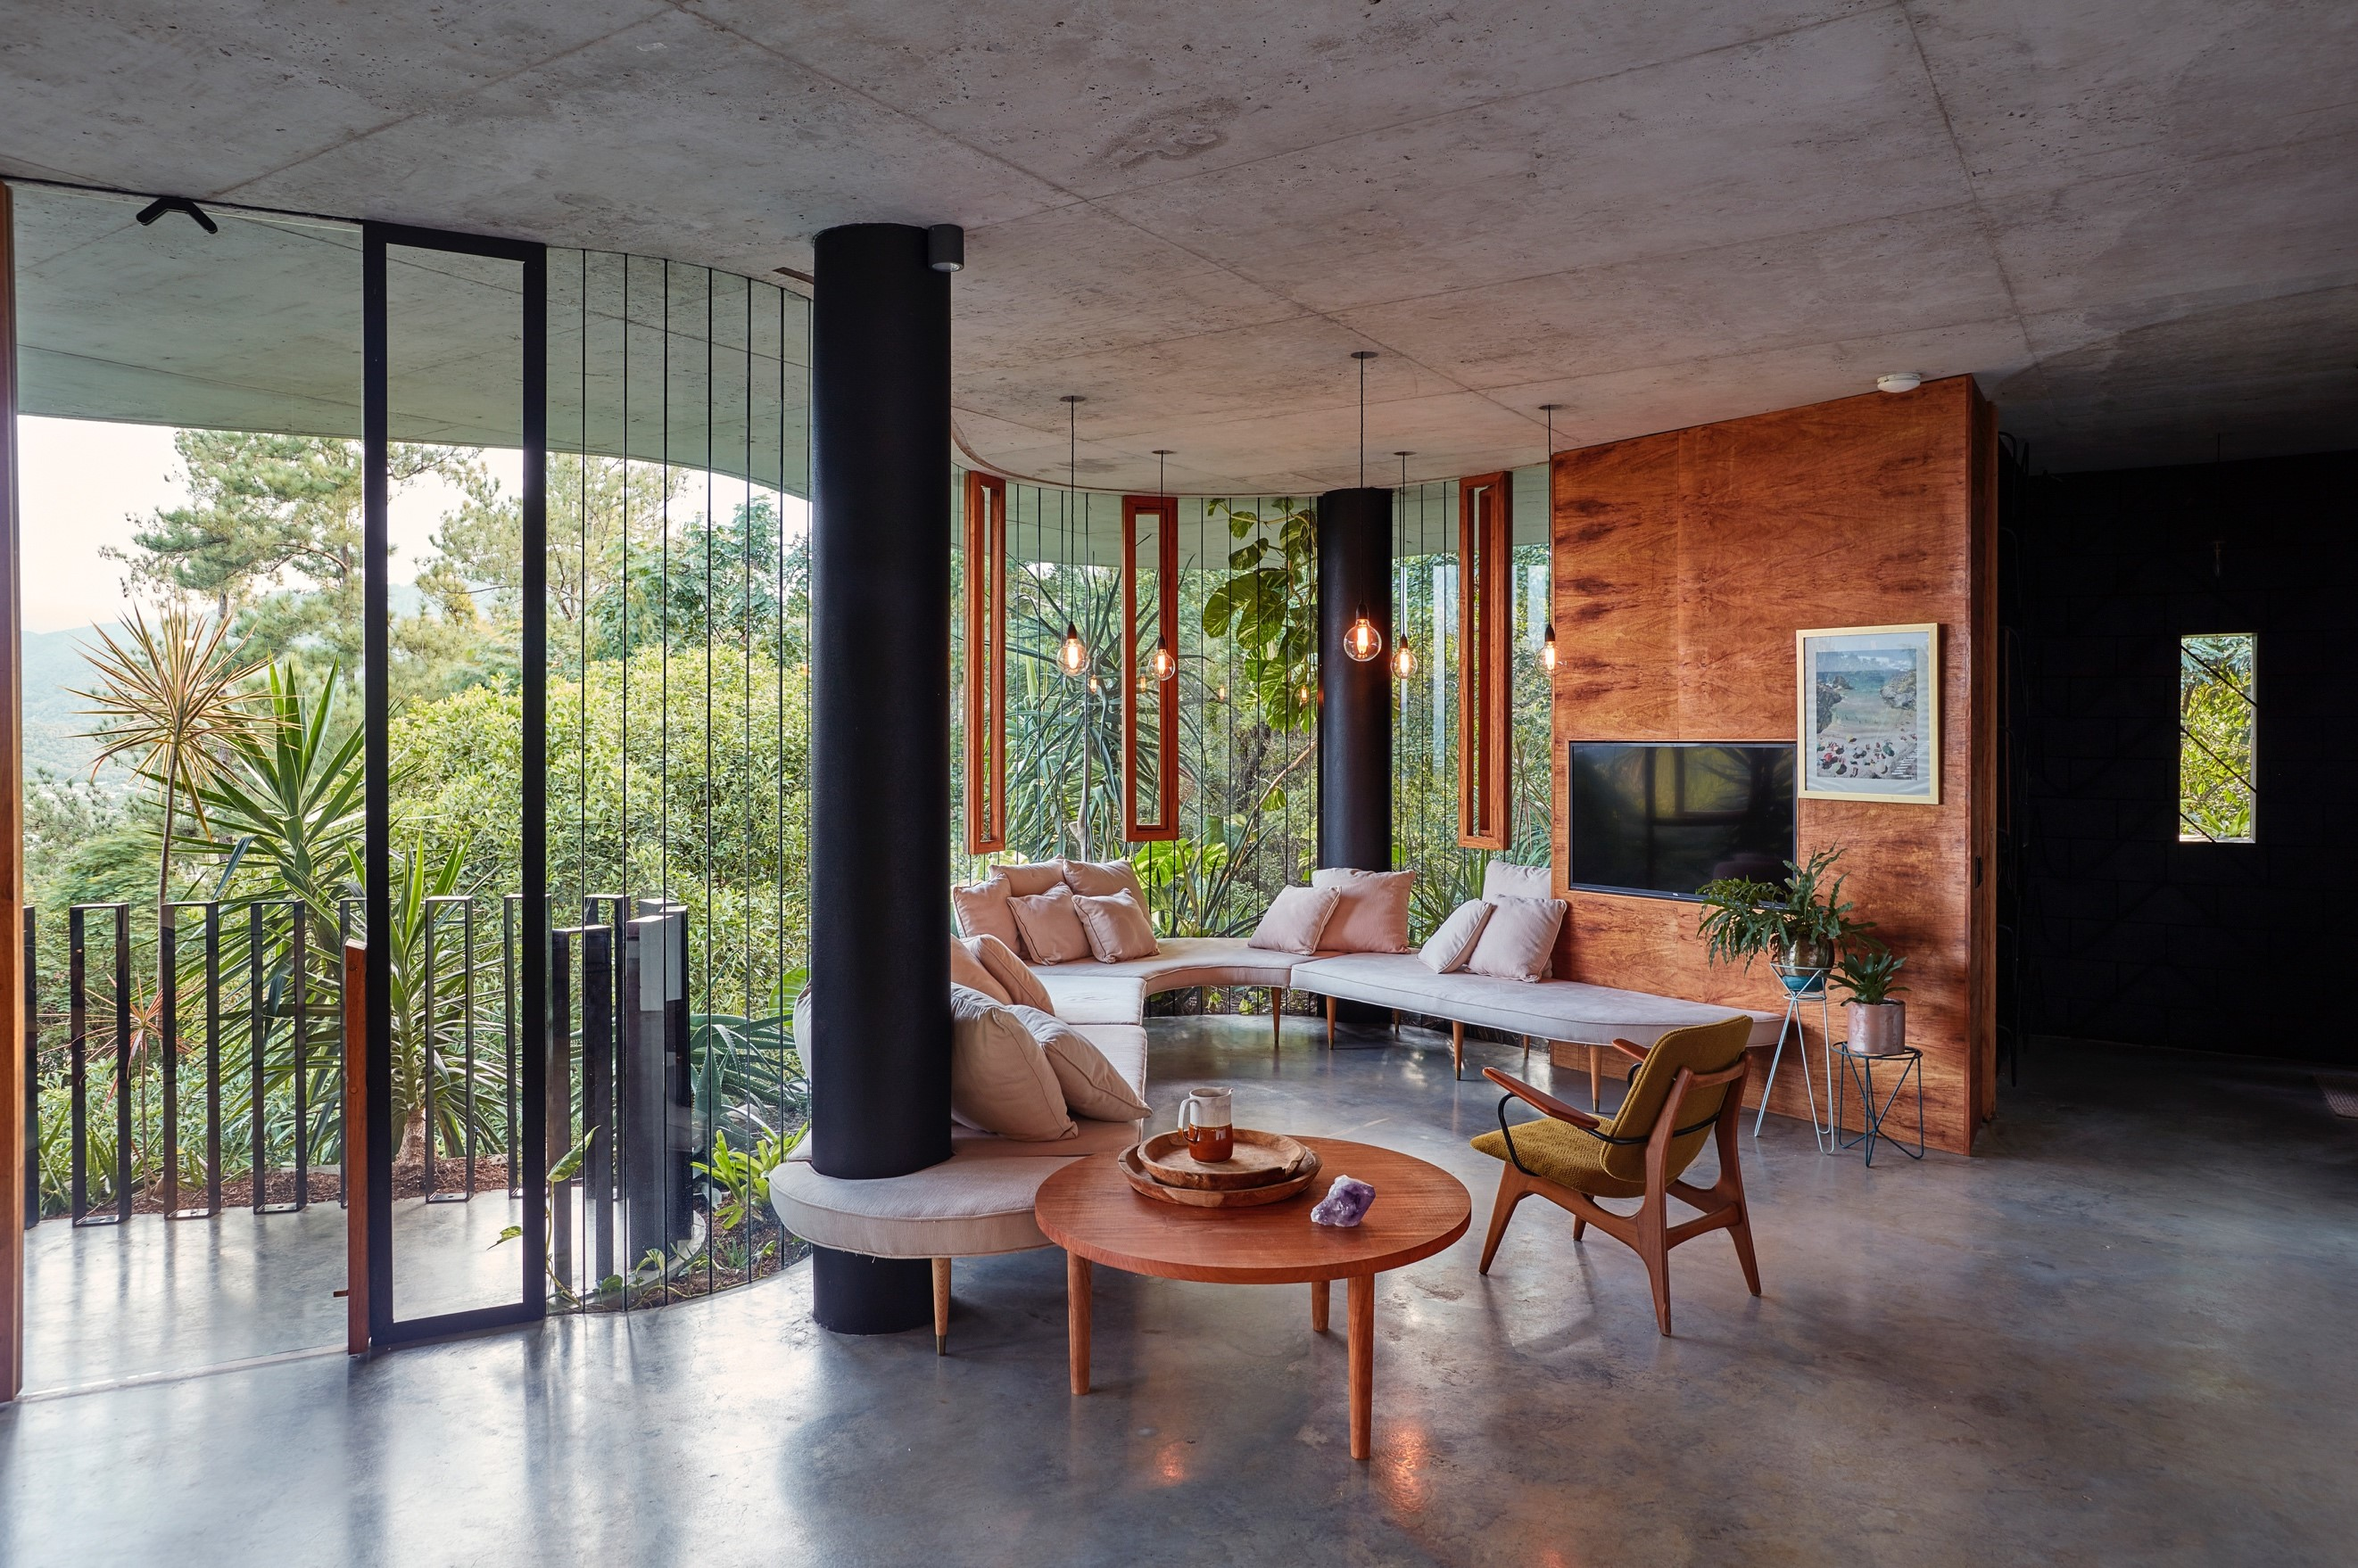 Bordering Mount Whitfield Conservation Park Is The Site For Jesse Bennett Studio's One Of A Kind Jungle Home.